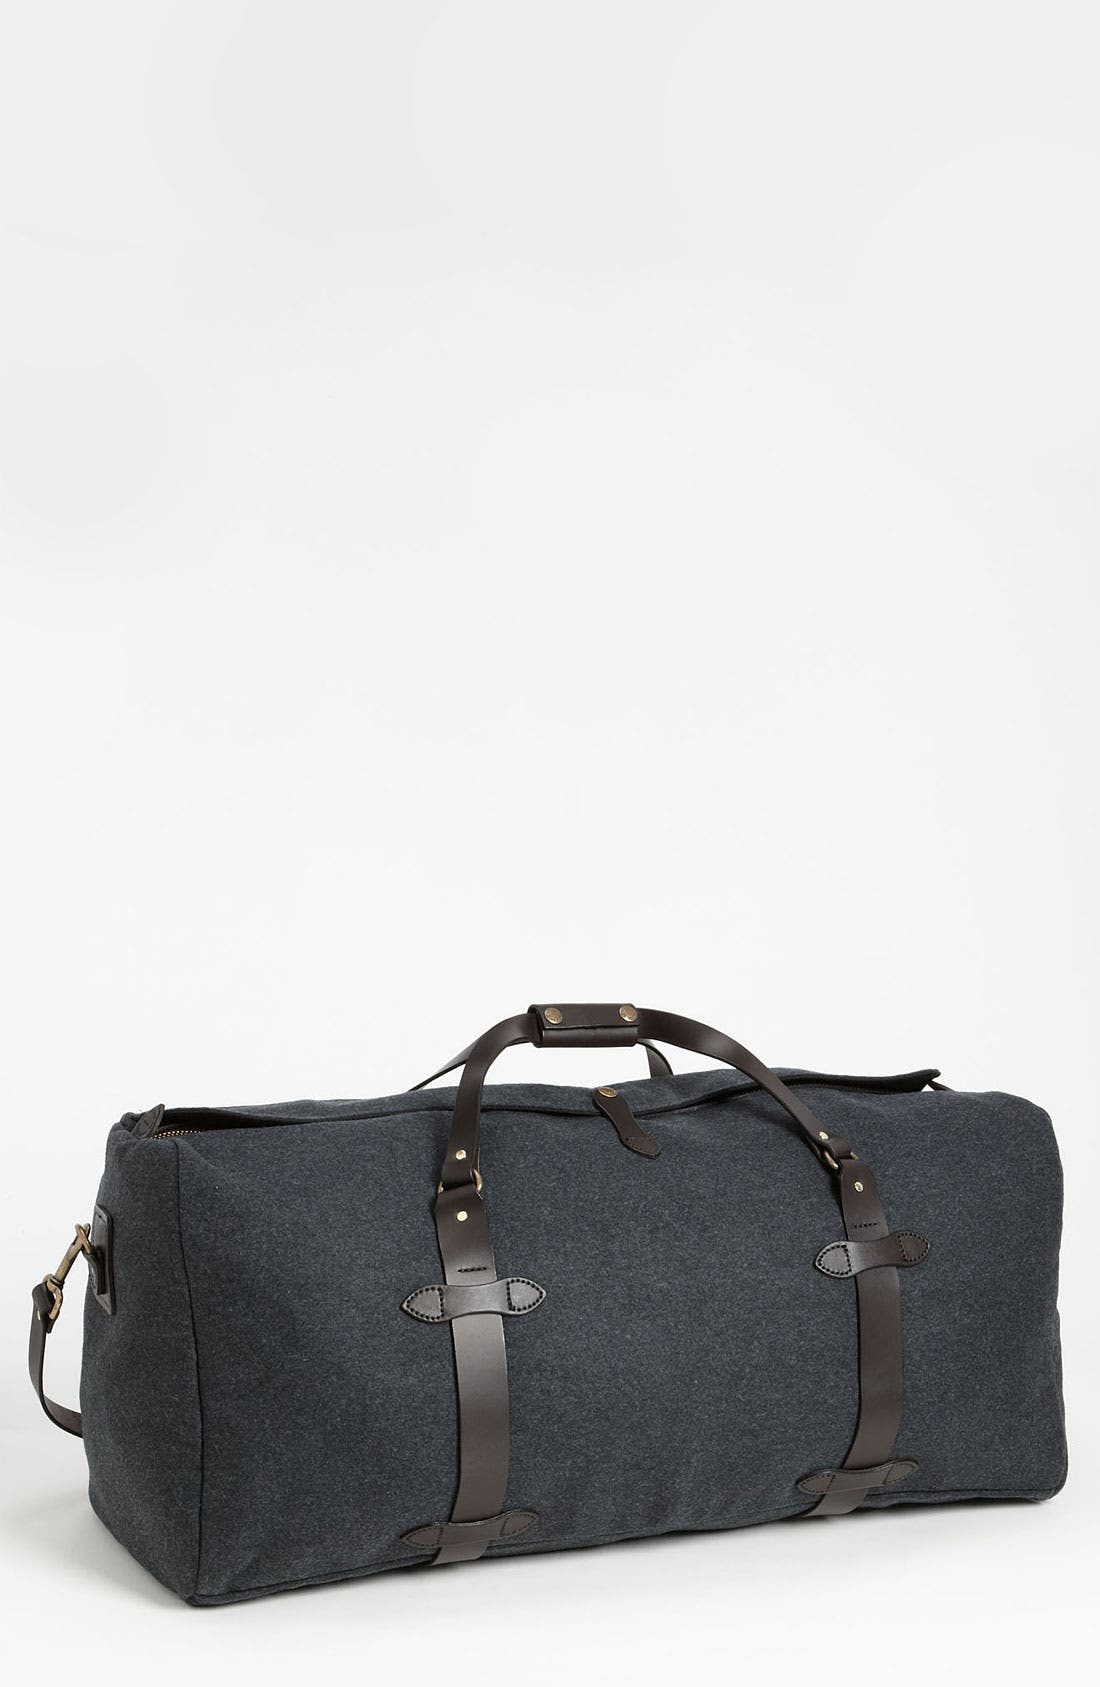 Alternate Image 1 Selected - Filson Large Wool Duffel Bag